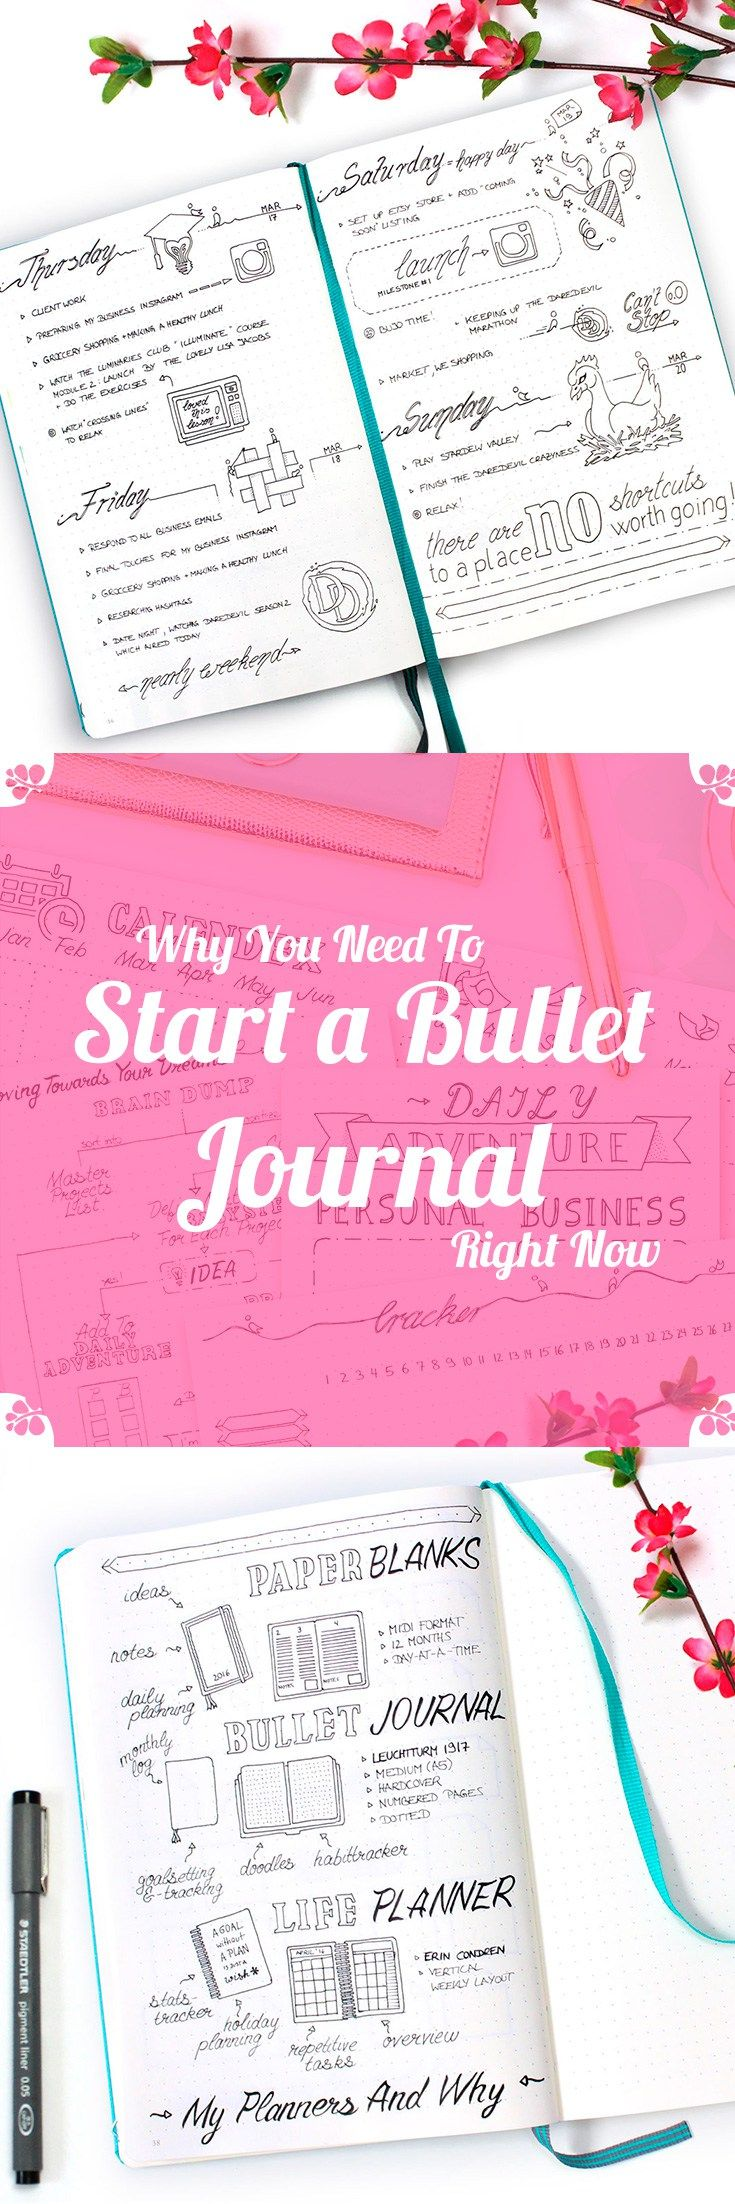 best ideas about change my life positive changes the bullet journal system changed my life for the better it not only helped me